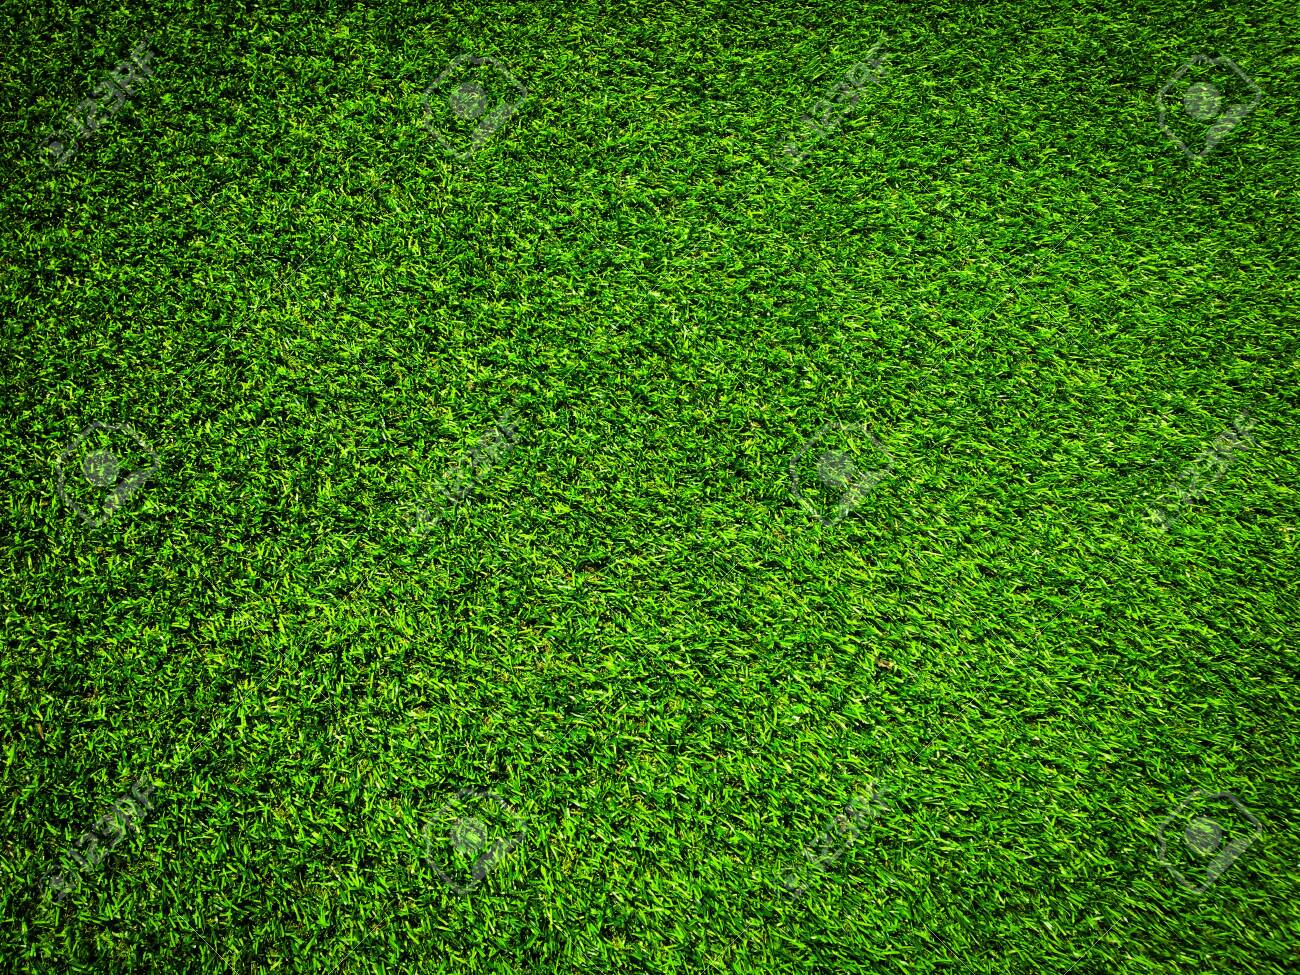 Nature green grass texture background for design. Eco concept. - 139078557